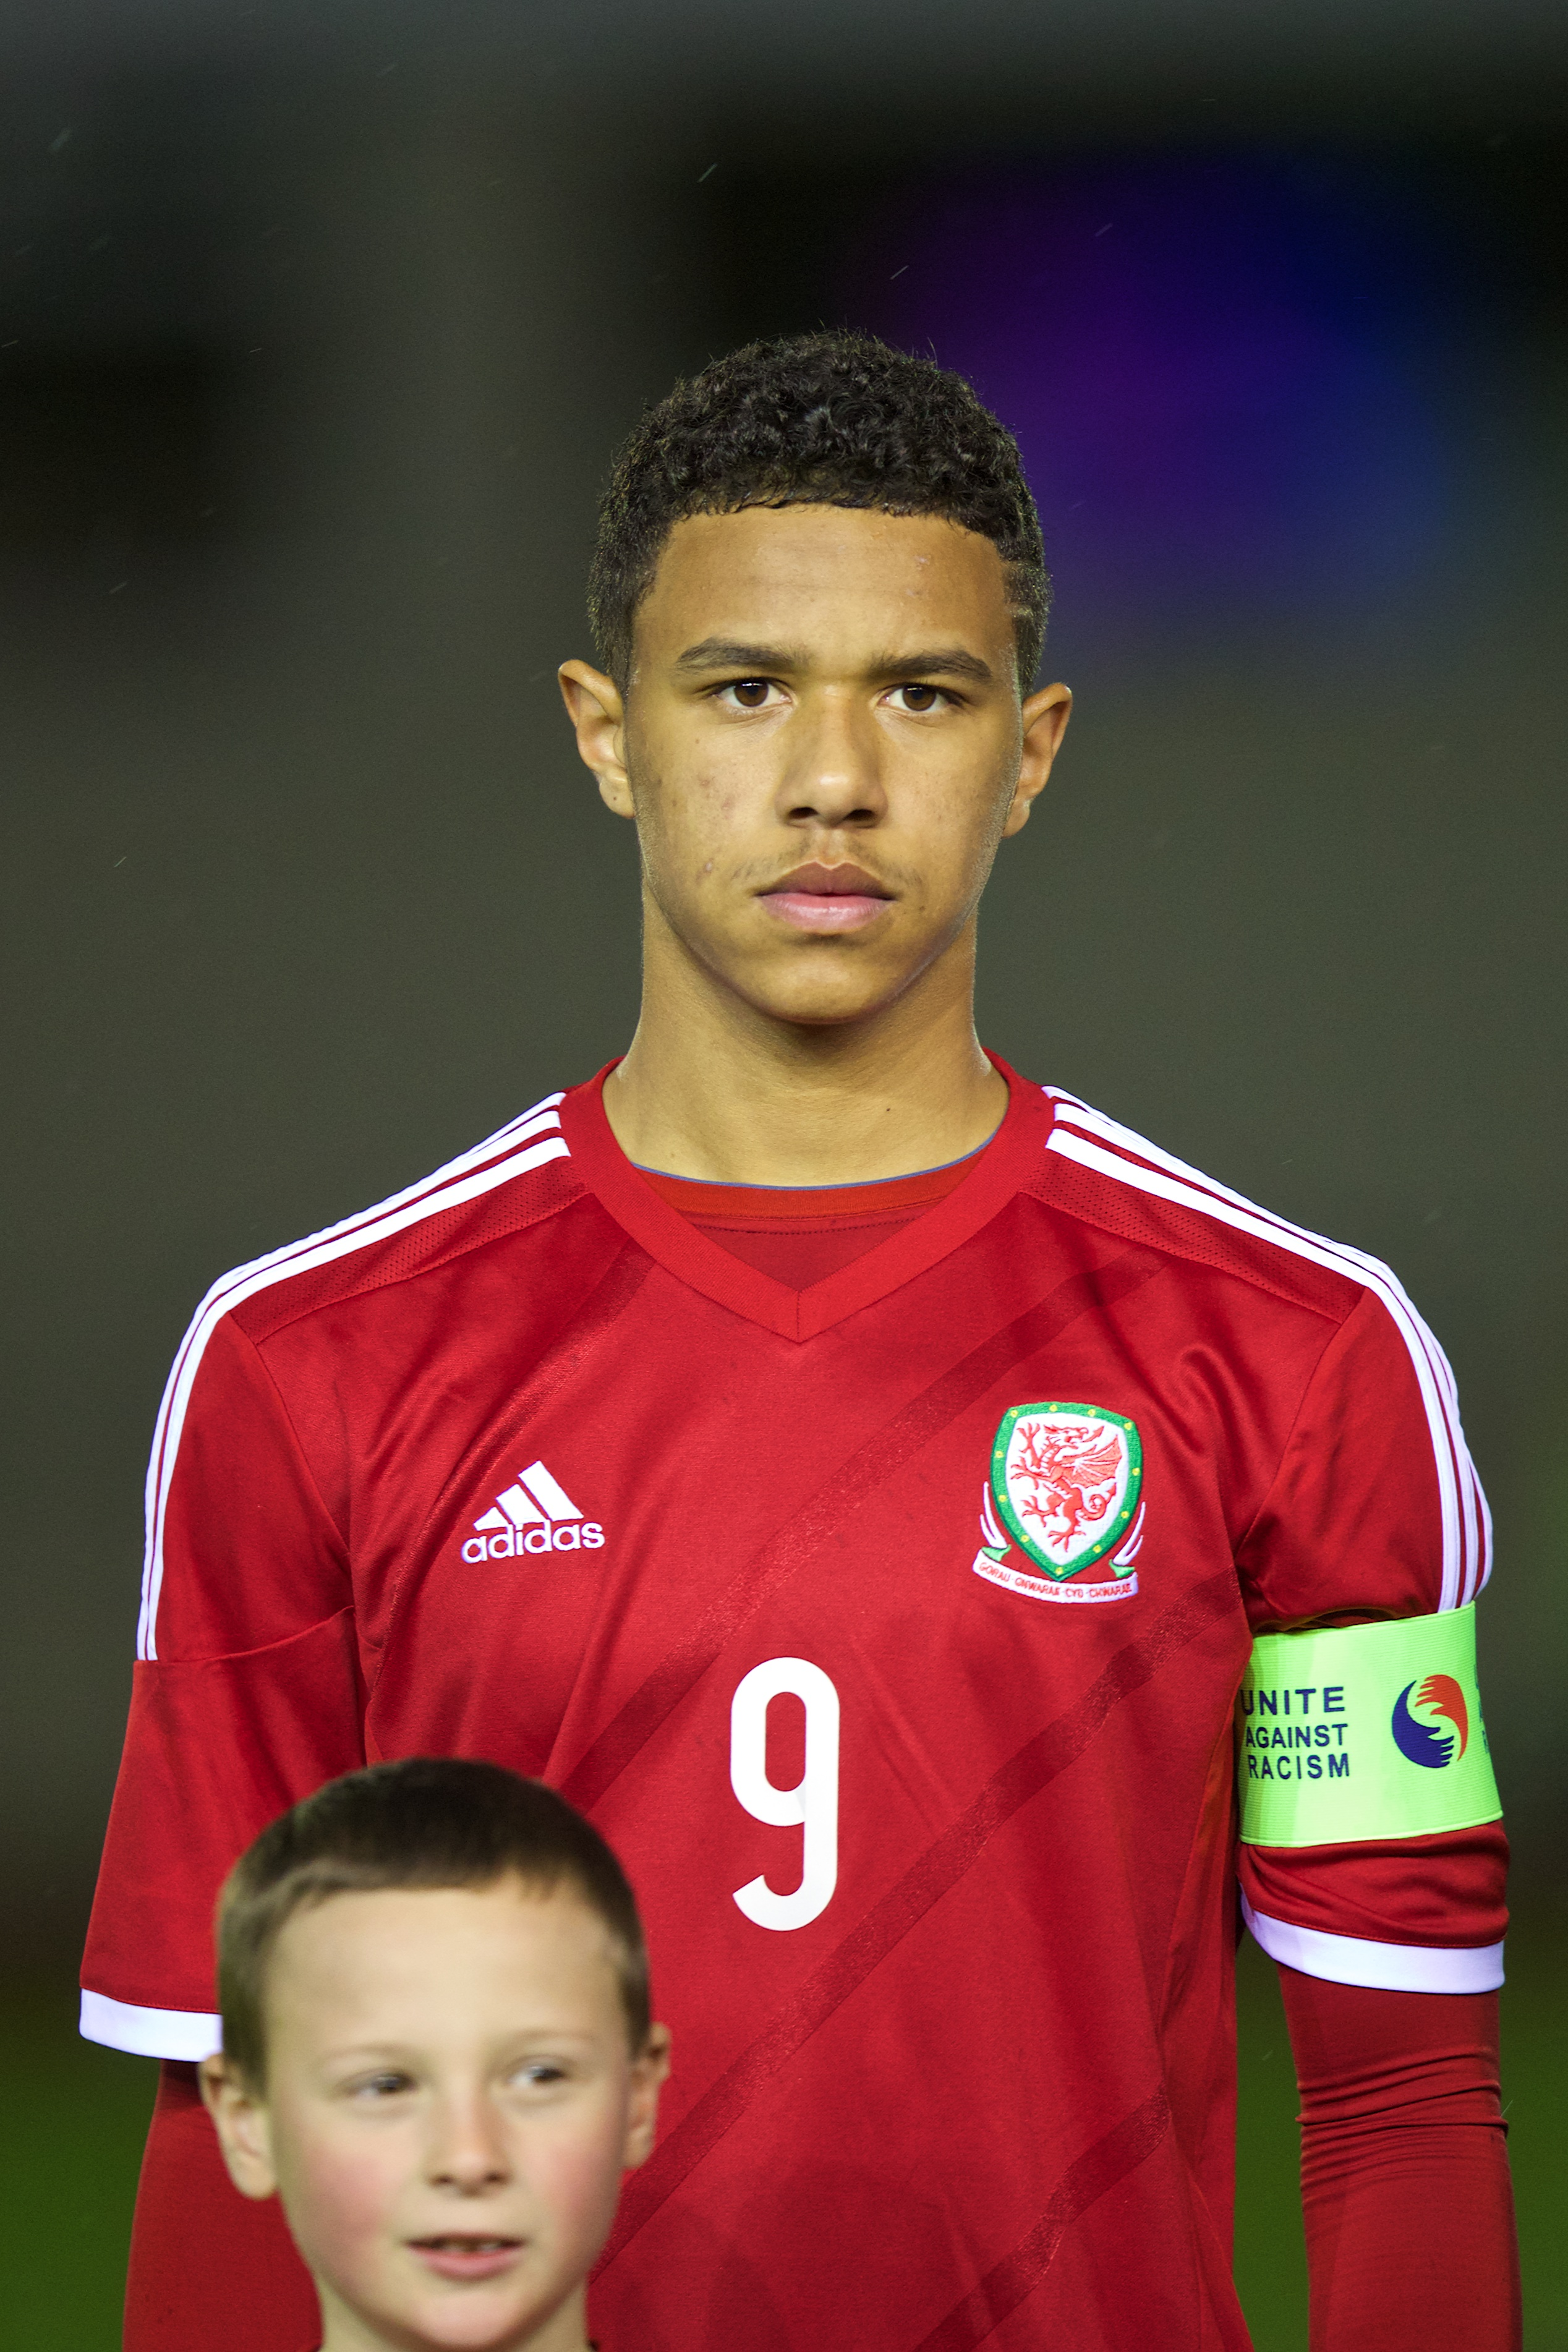 Wales v Poland U15s - Thursday 20th March 2014